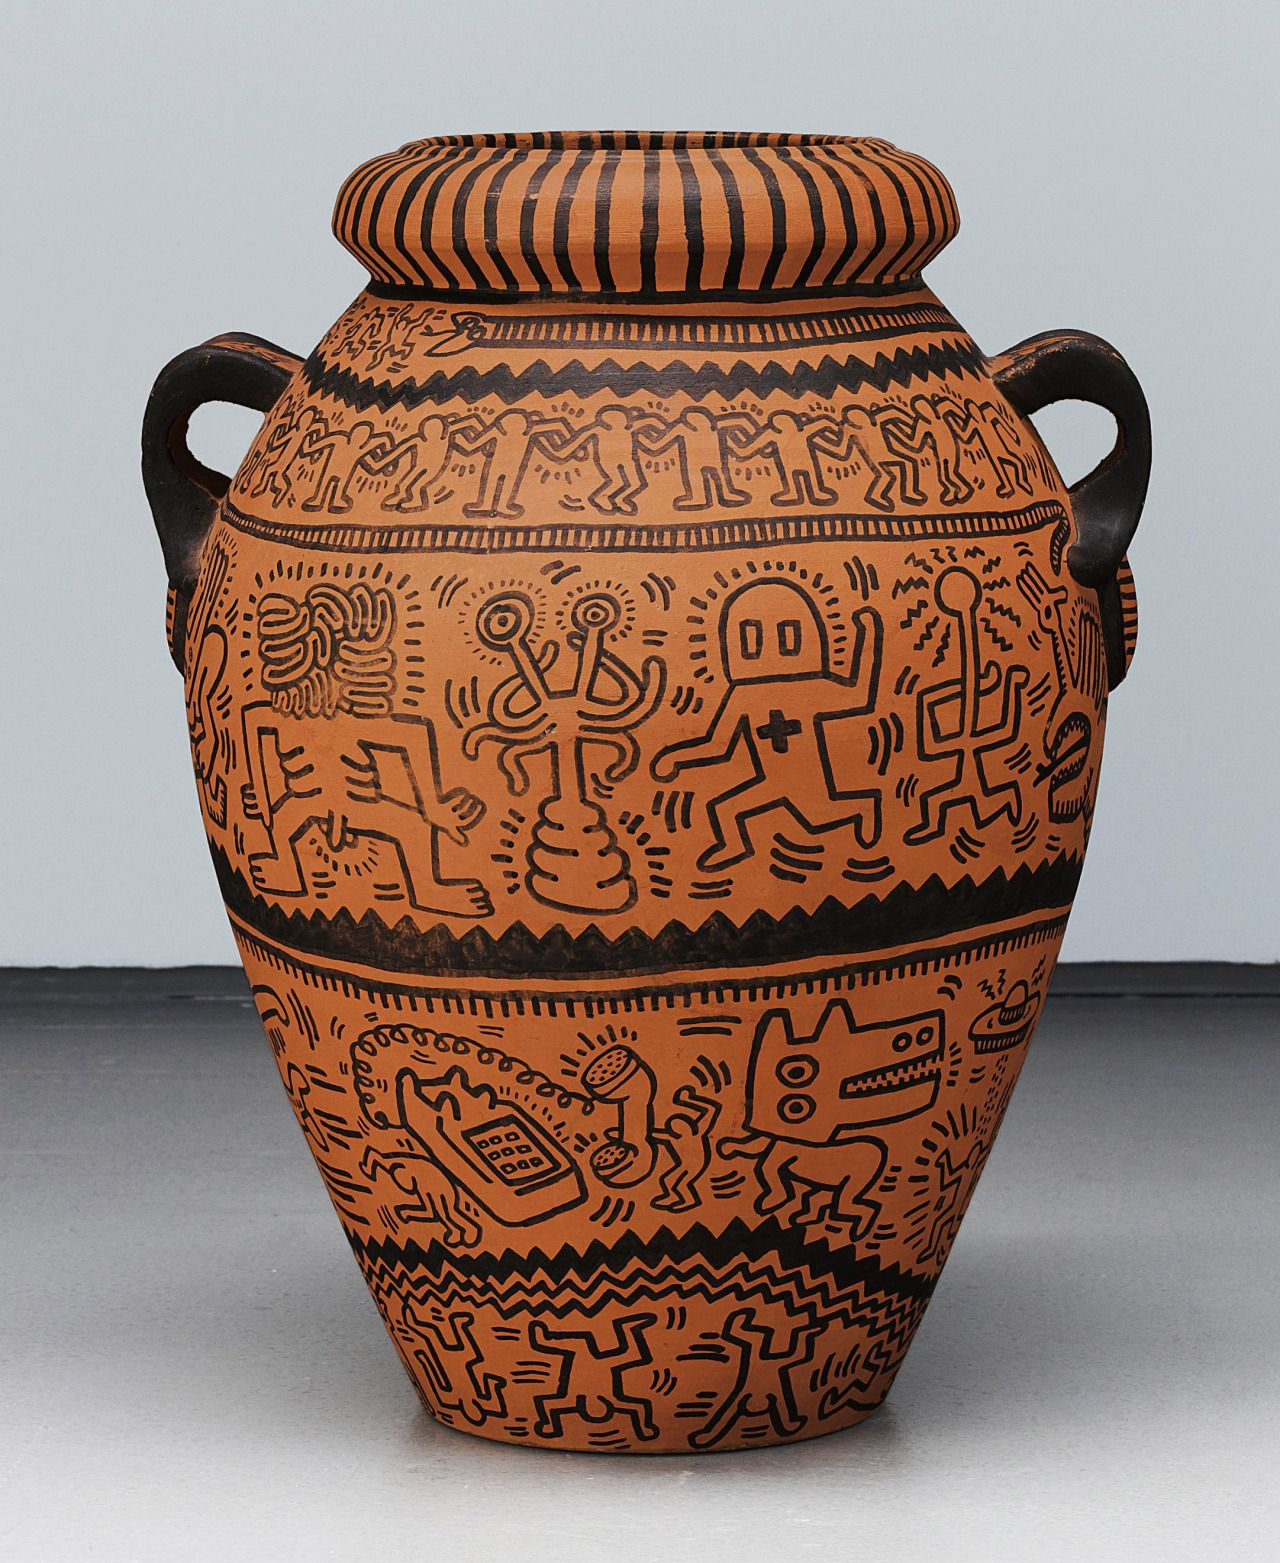 Keith haring untitled ink on terracotta vase usa 1984 keith haring untitled ink on terracotta vase usa 1984 phillips reviewsmspy